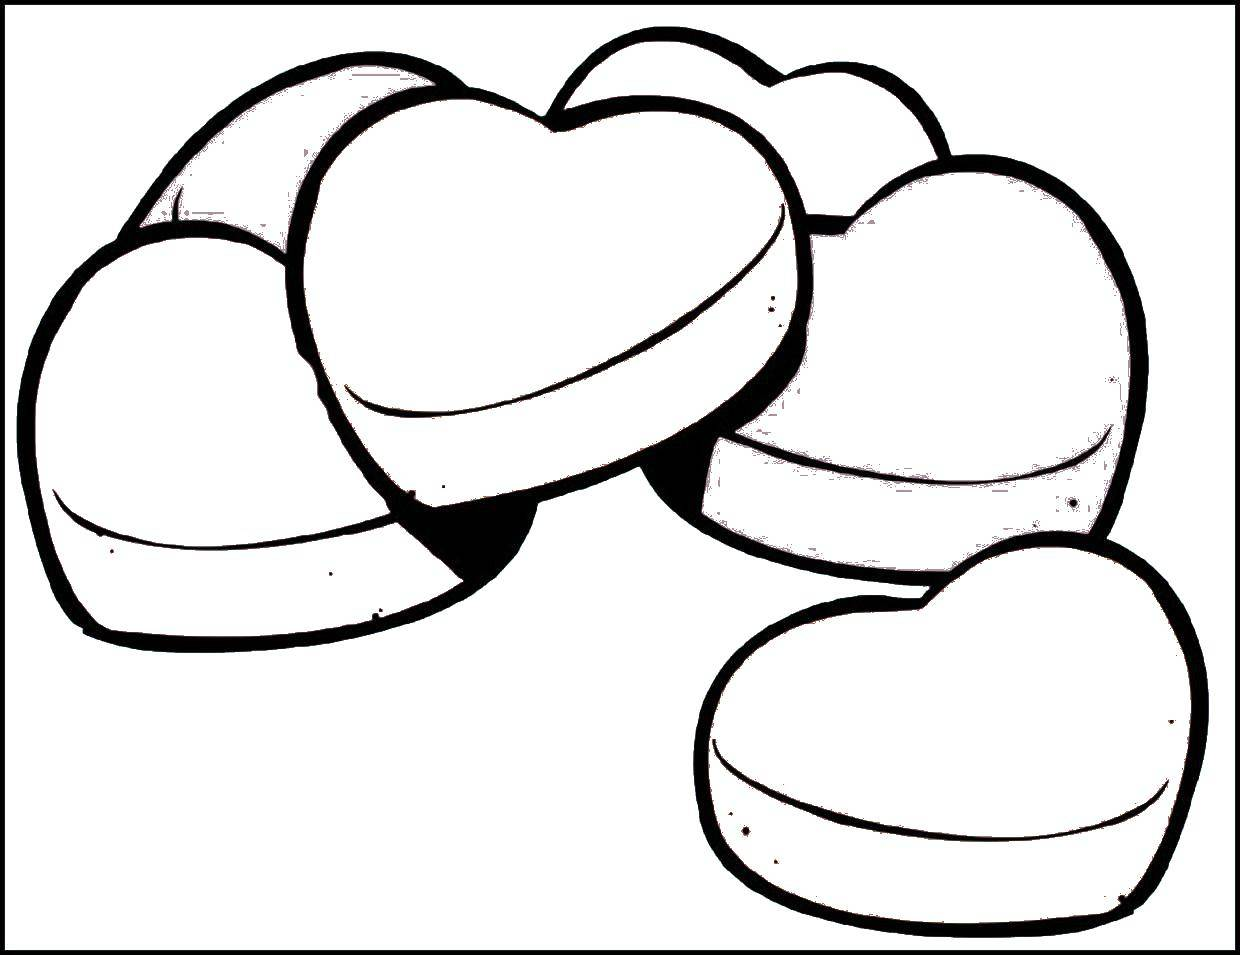 Coloring cookies in the shape of hearts category valentines day tags valentines day